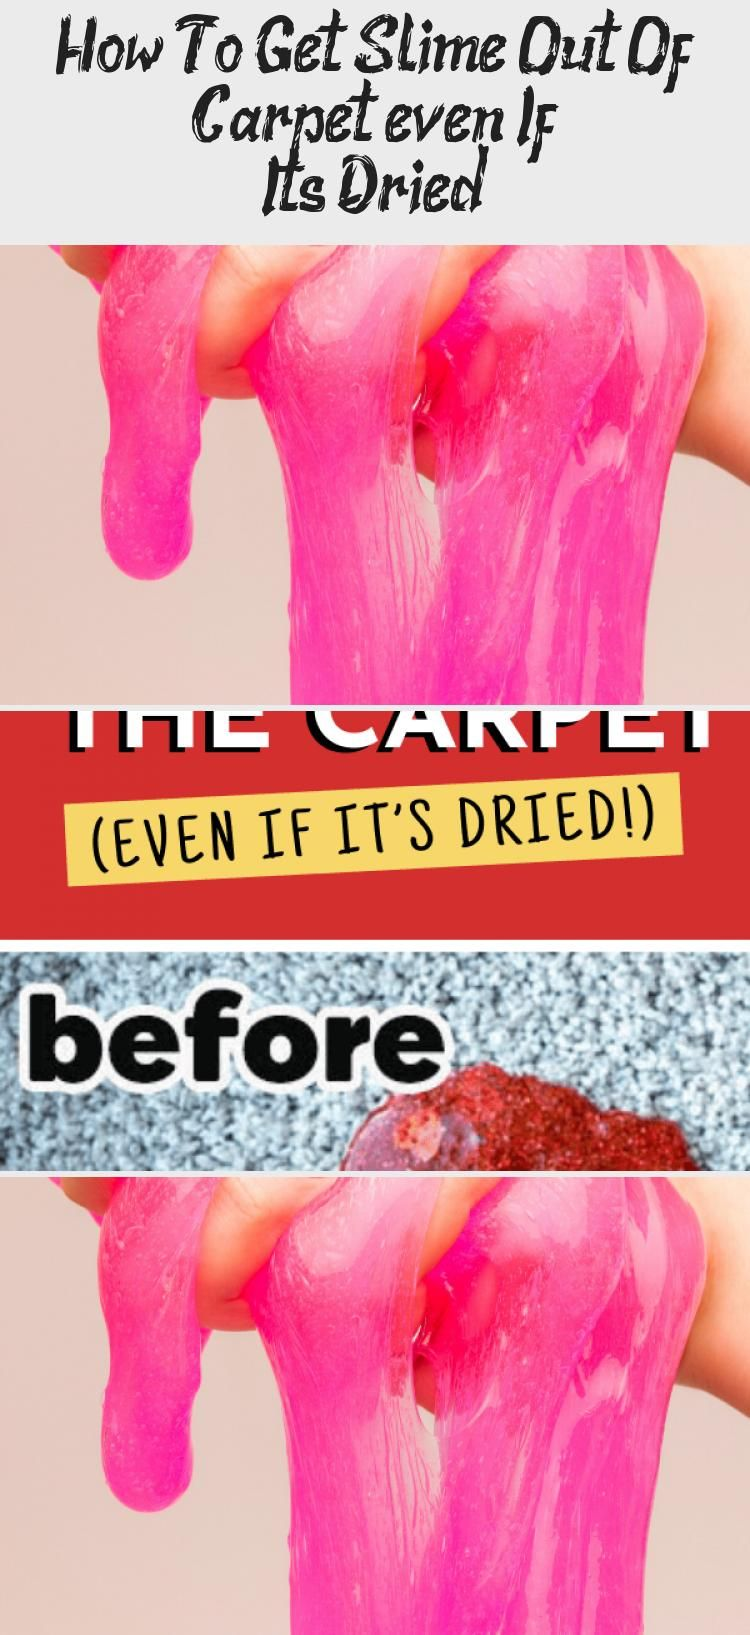 How To Get Slime Out Of Carpet Very Easy Cleaning Tip For How To Get Dried Slime Out Of Carpet It S Easy To Remove Slime Fro How To Clean Carpet Slime